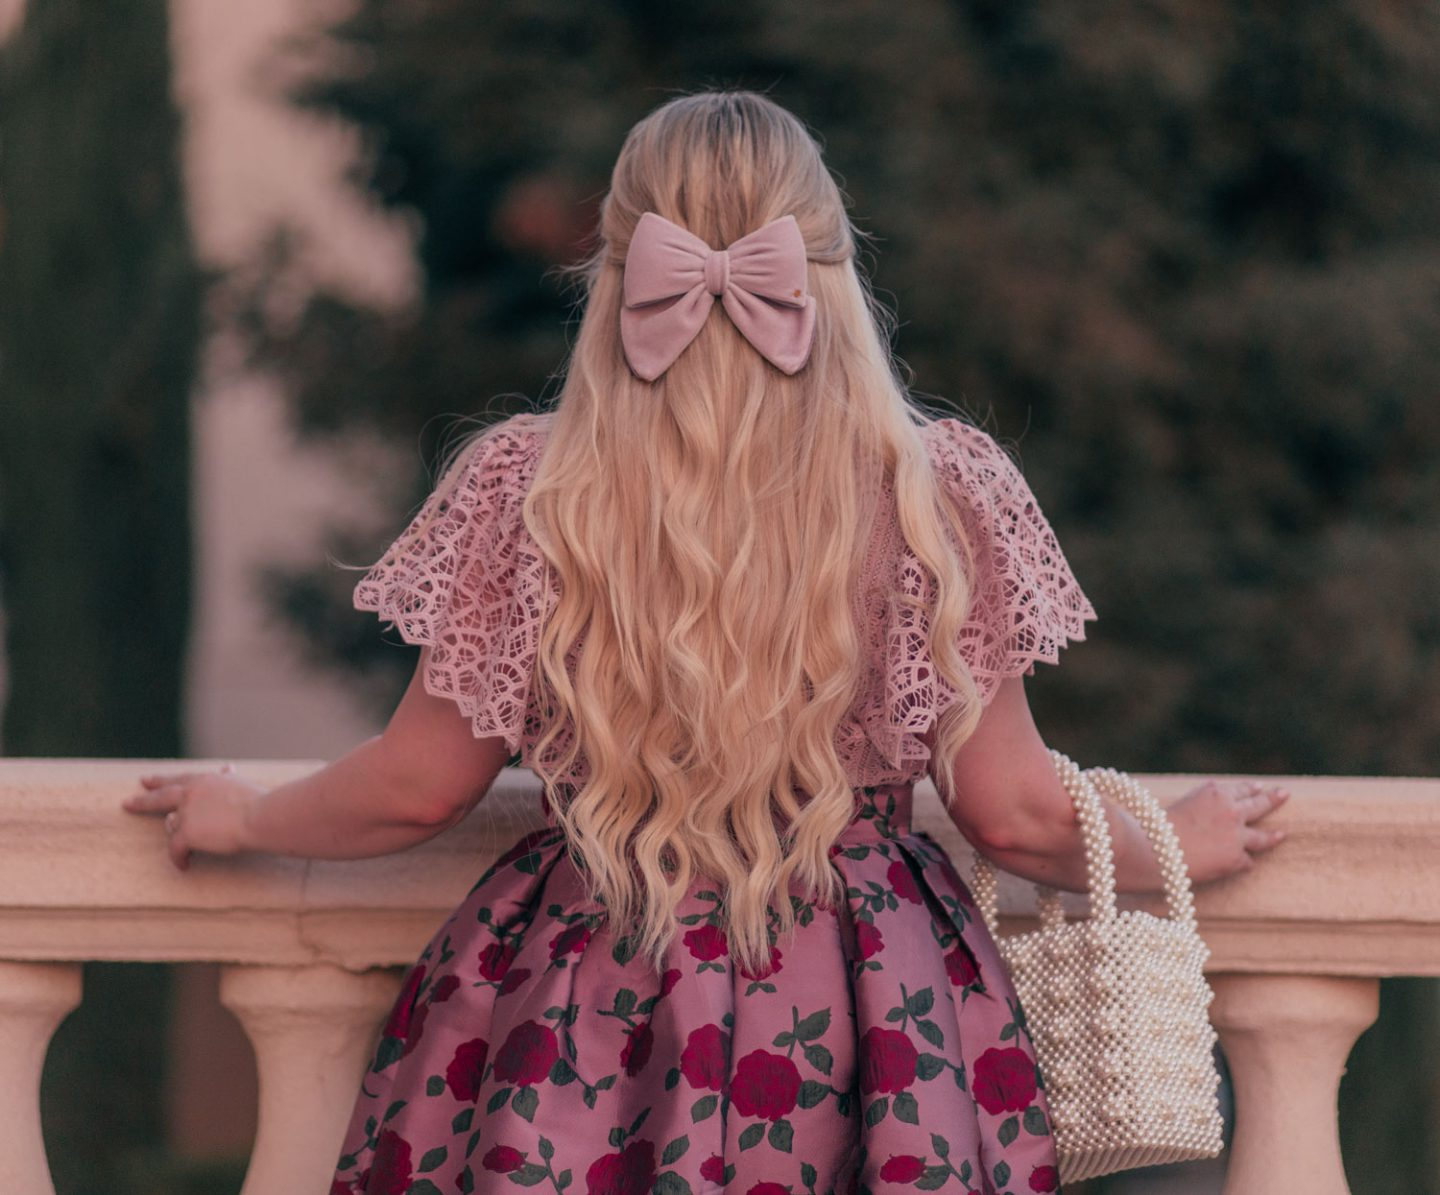 Feminine Fashion Blogger Elizabeth Hugen of Lizzie in Lace shares 5 Easy Ways to Dress More Feminine and wear a pink outfit with a lace top, velvet hair bow and floral skirt